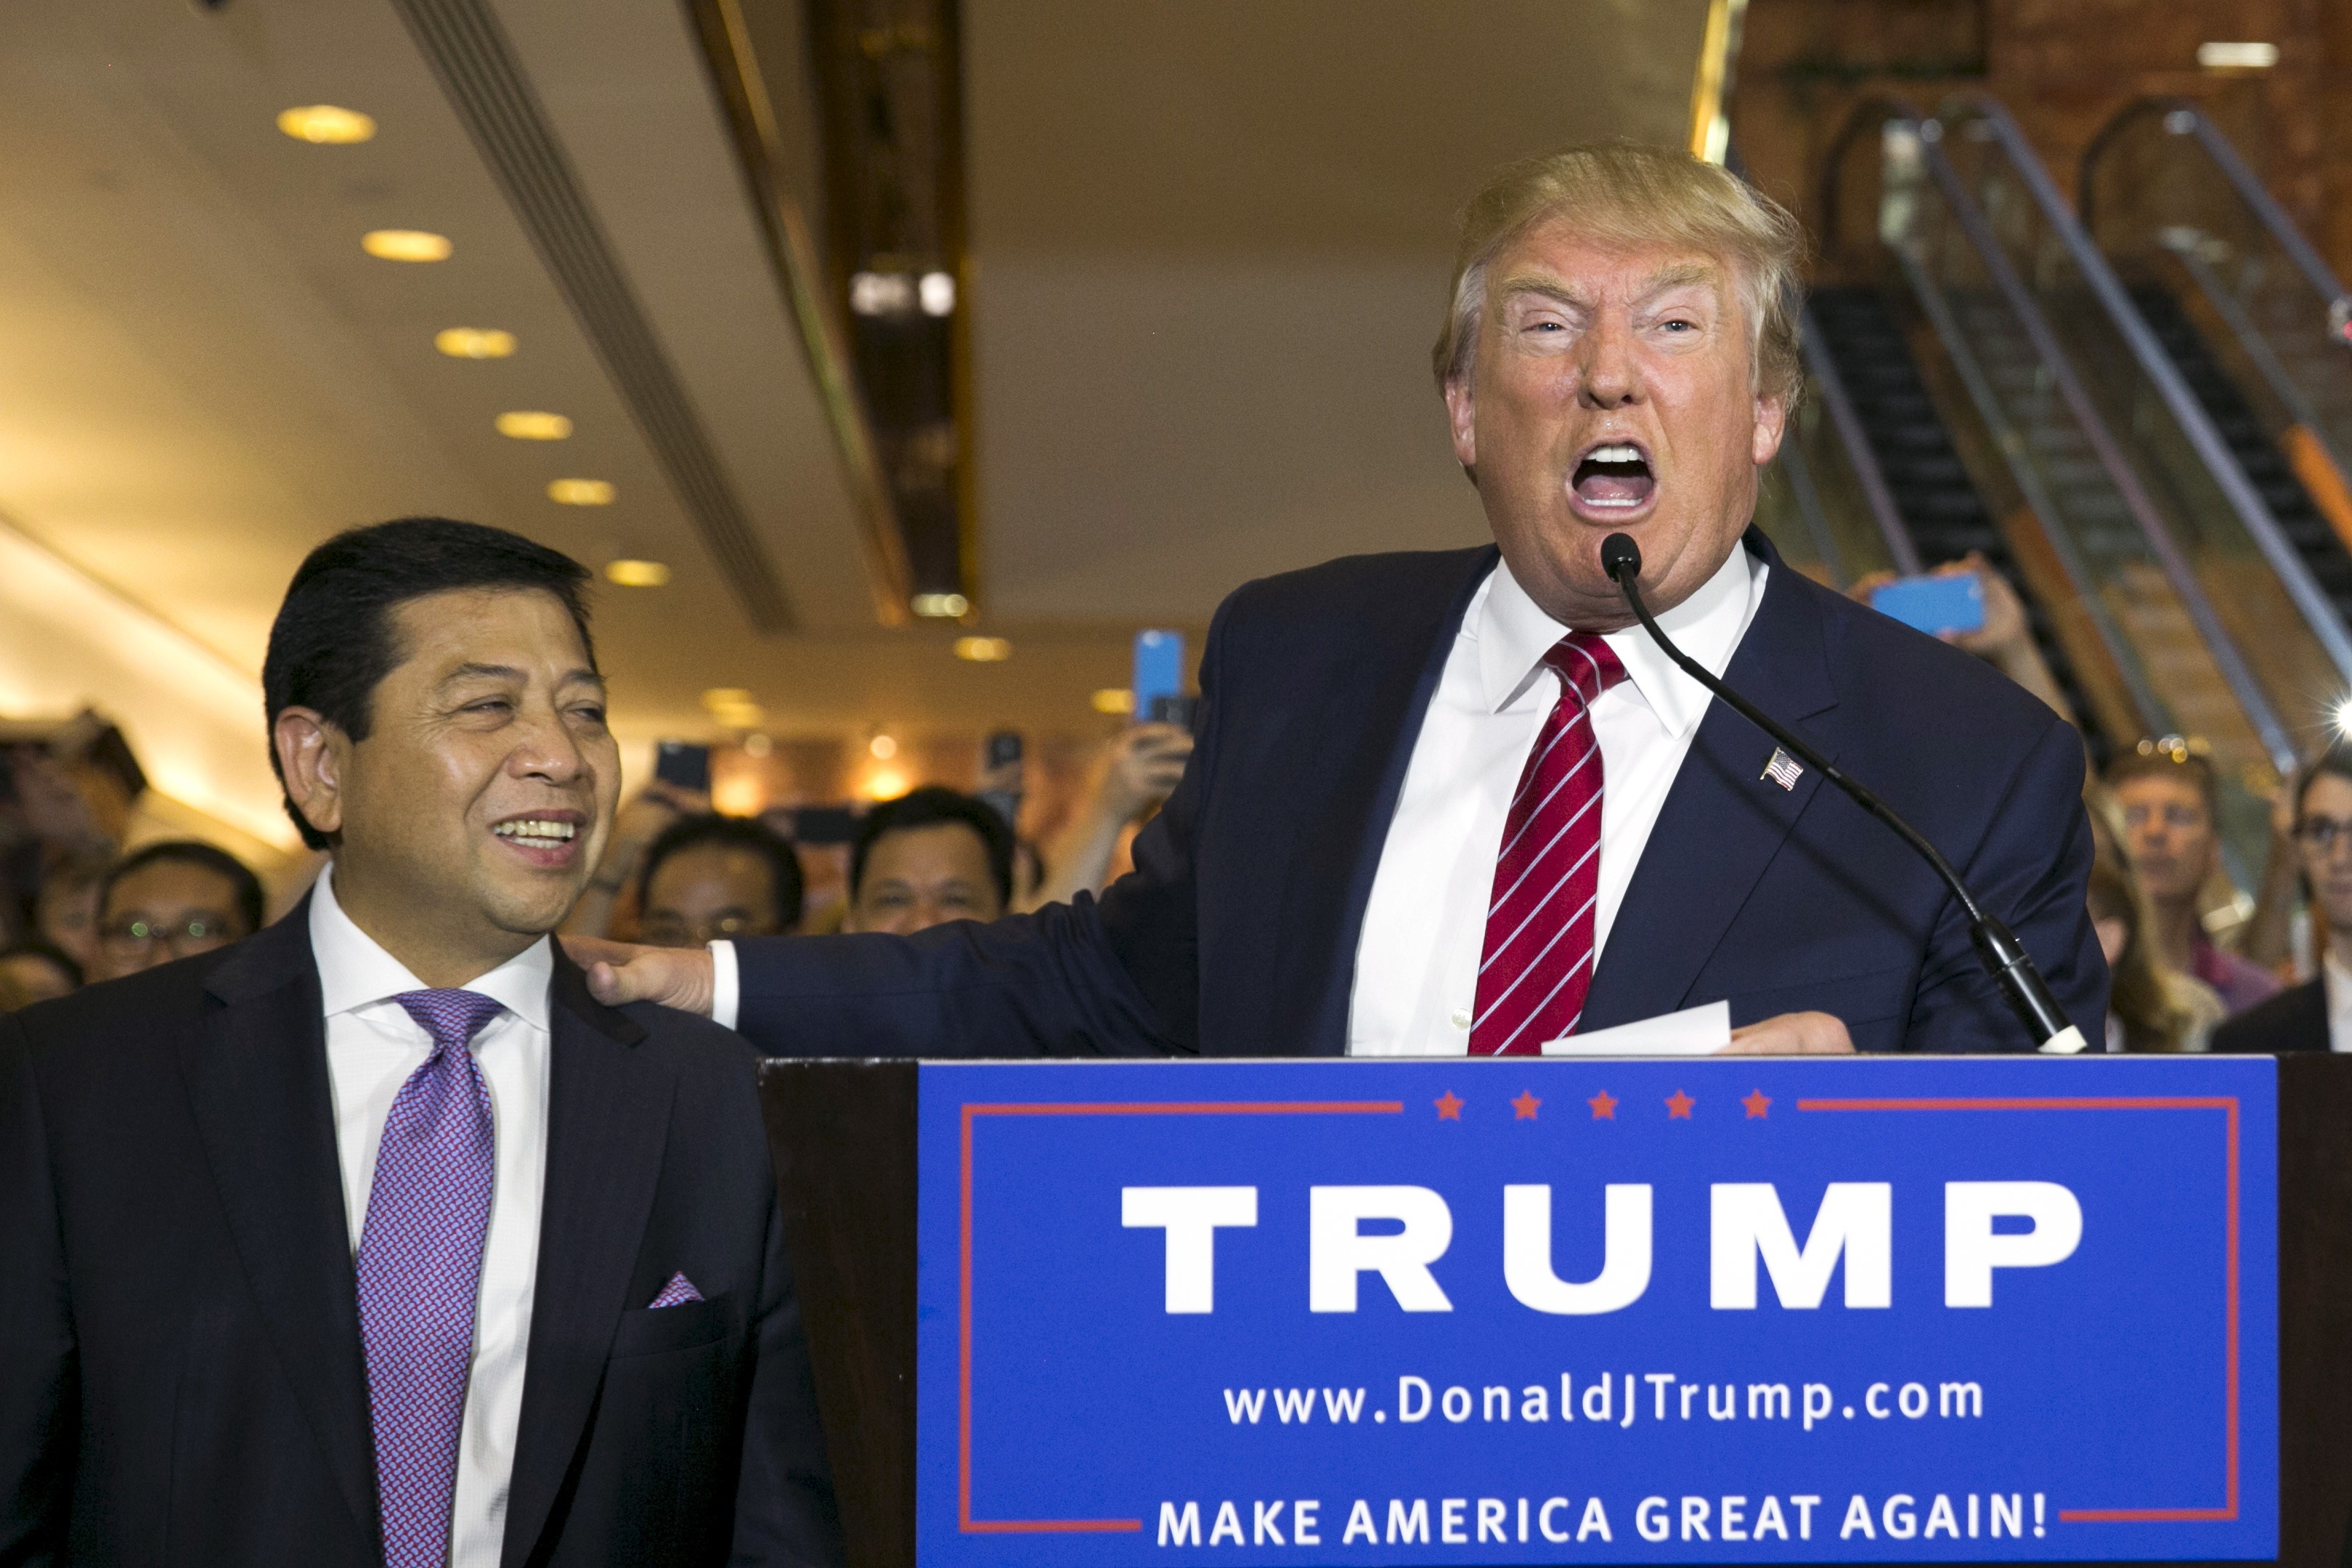 U.S. presidential hopeful Donald Trump (R) stands with Setya Novanto, Speaker of the House of Representatives of Indonesia, following a press availability after signing a pledge with the RNC at Trump Tower in Manhattan, New York